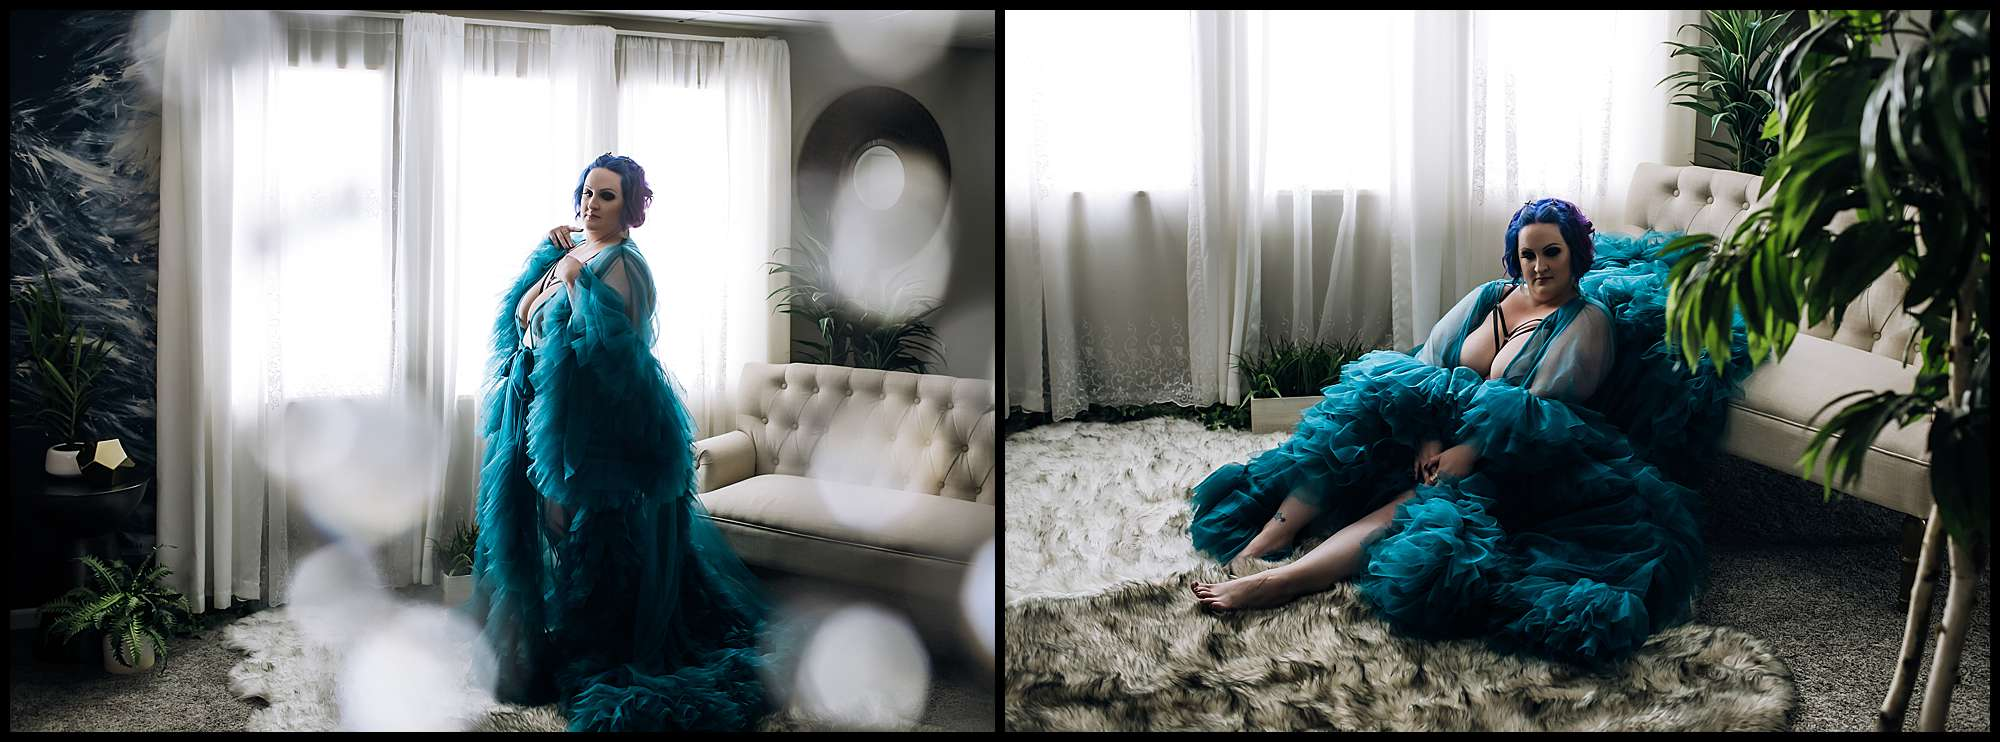 Luxe Teal Robe Blog_0186